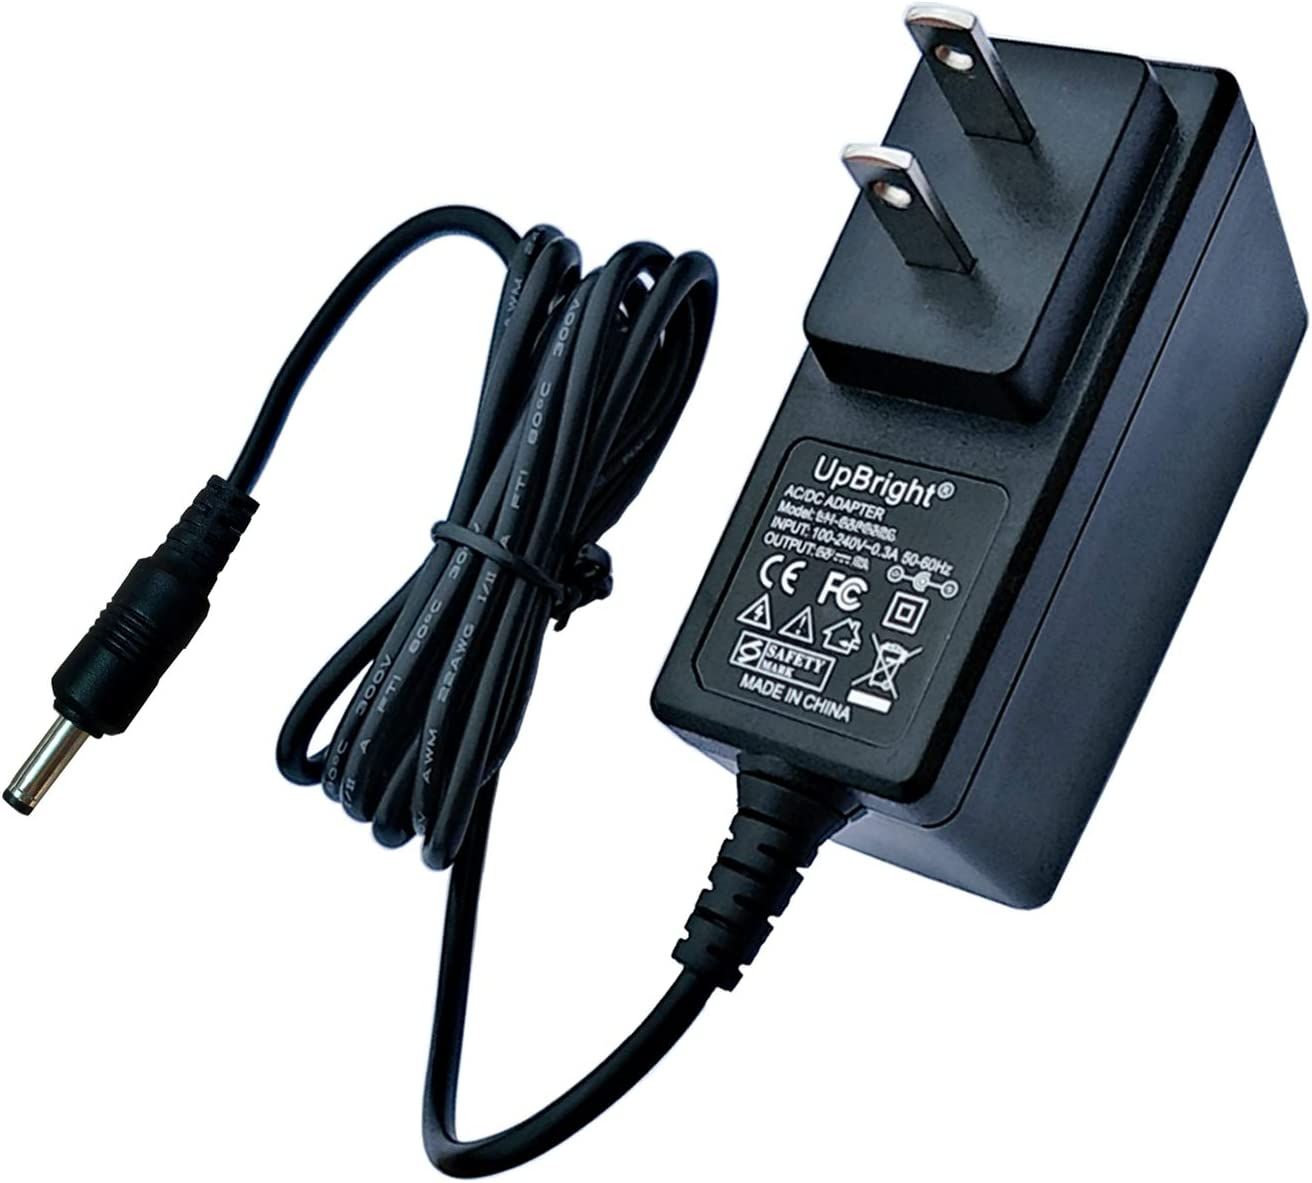 "UpBright 5V AC/DC Adapter Compatible with IVIEW Ultima 13.3"" Convertible Laptop PC Logitech G19 Y-U0005 JODEN JOD-SBU050242 JOD-SW-02219 Kings KSS18-050-2500U Insignia NS-DP8CH Psion Teklogix 7525 PSU"